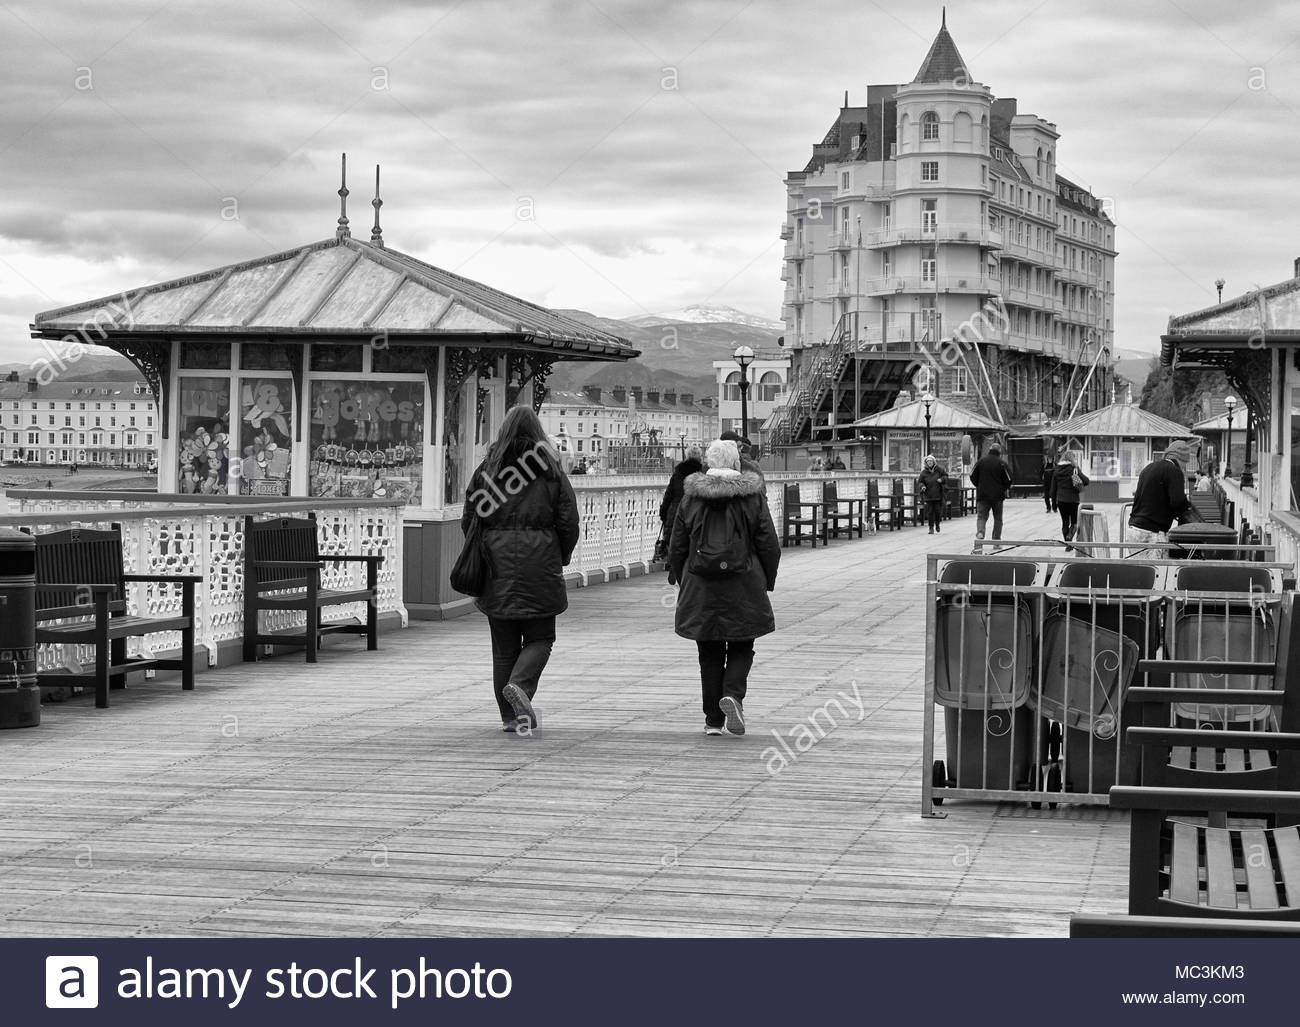 People walking on the pier in llandudno seaside town in north wales uk in the springtime - Stock Image